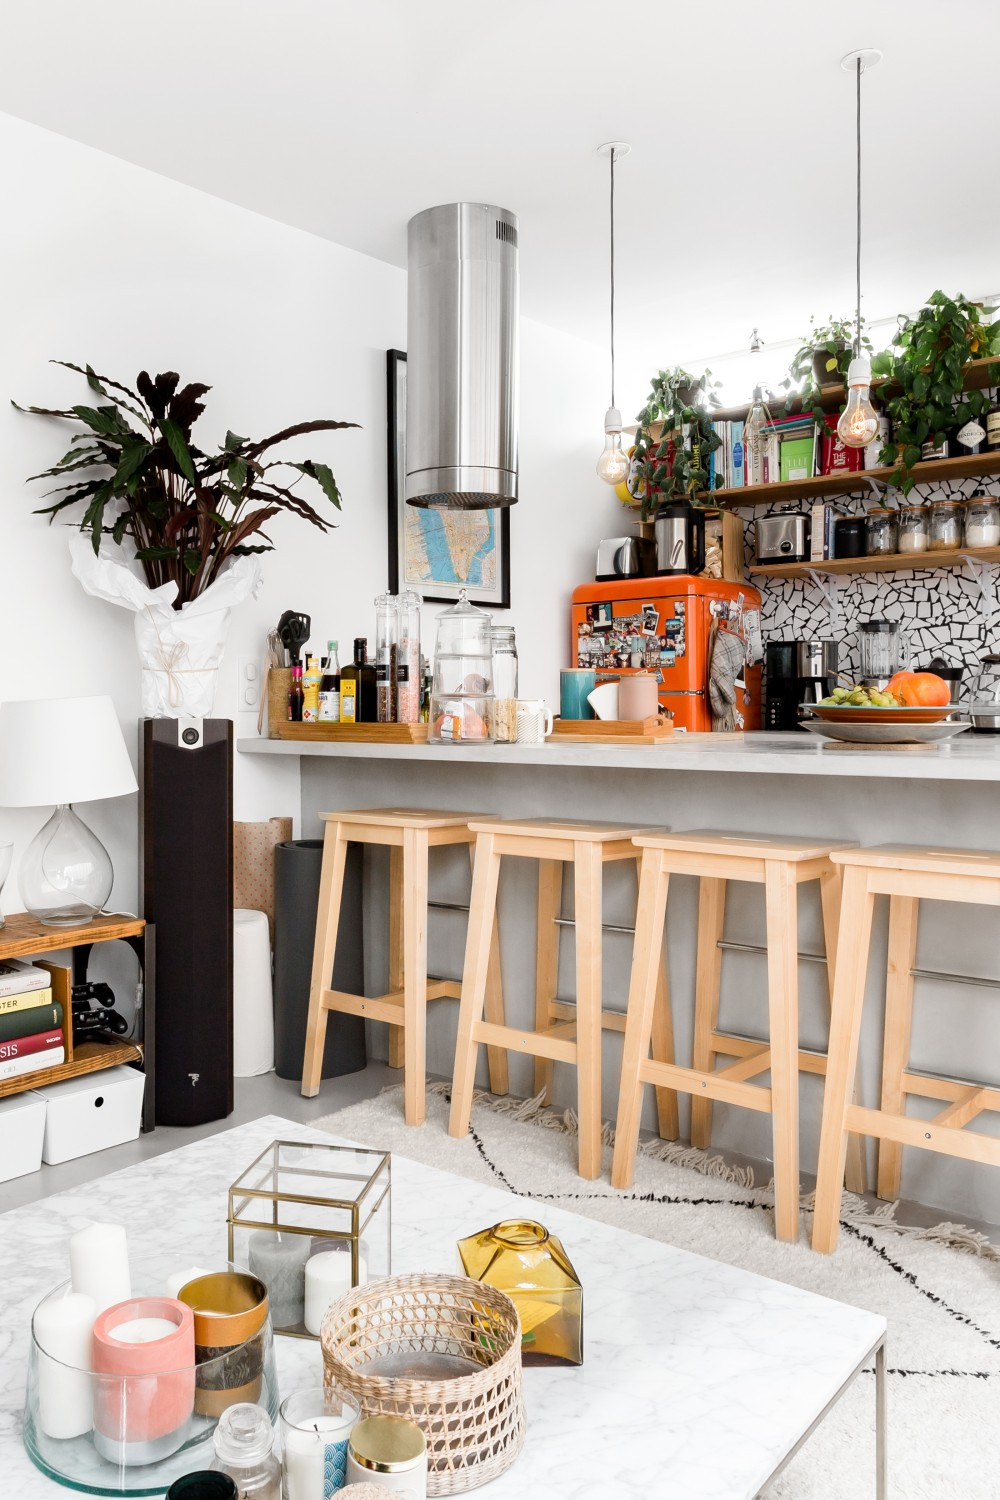 A Bright Attic Apartment in Paris That's For Rent on Airbnb